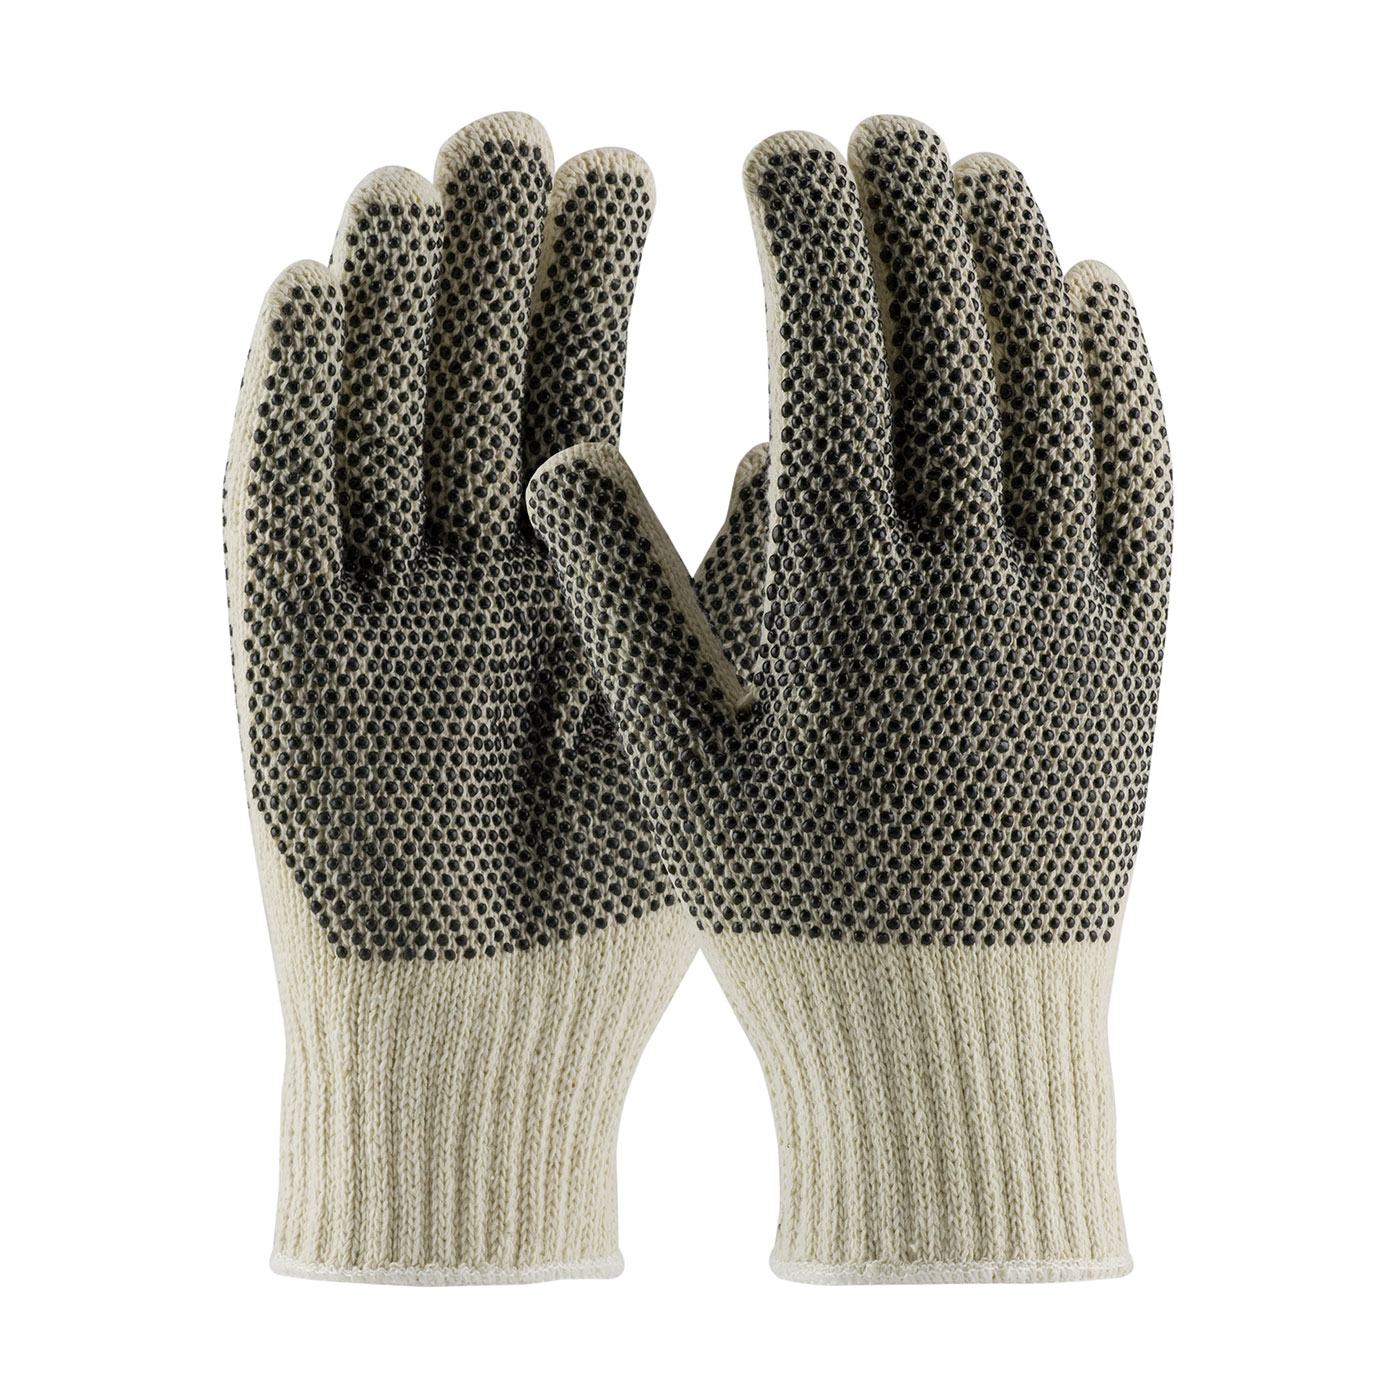 Cotton Poly Double Sided Pvc Palm Dotted Knit Gloves